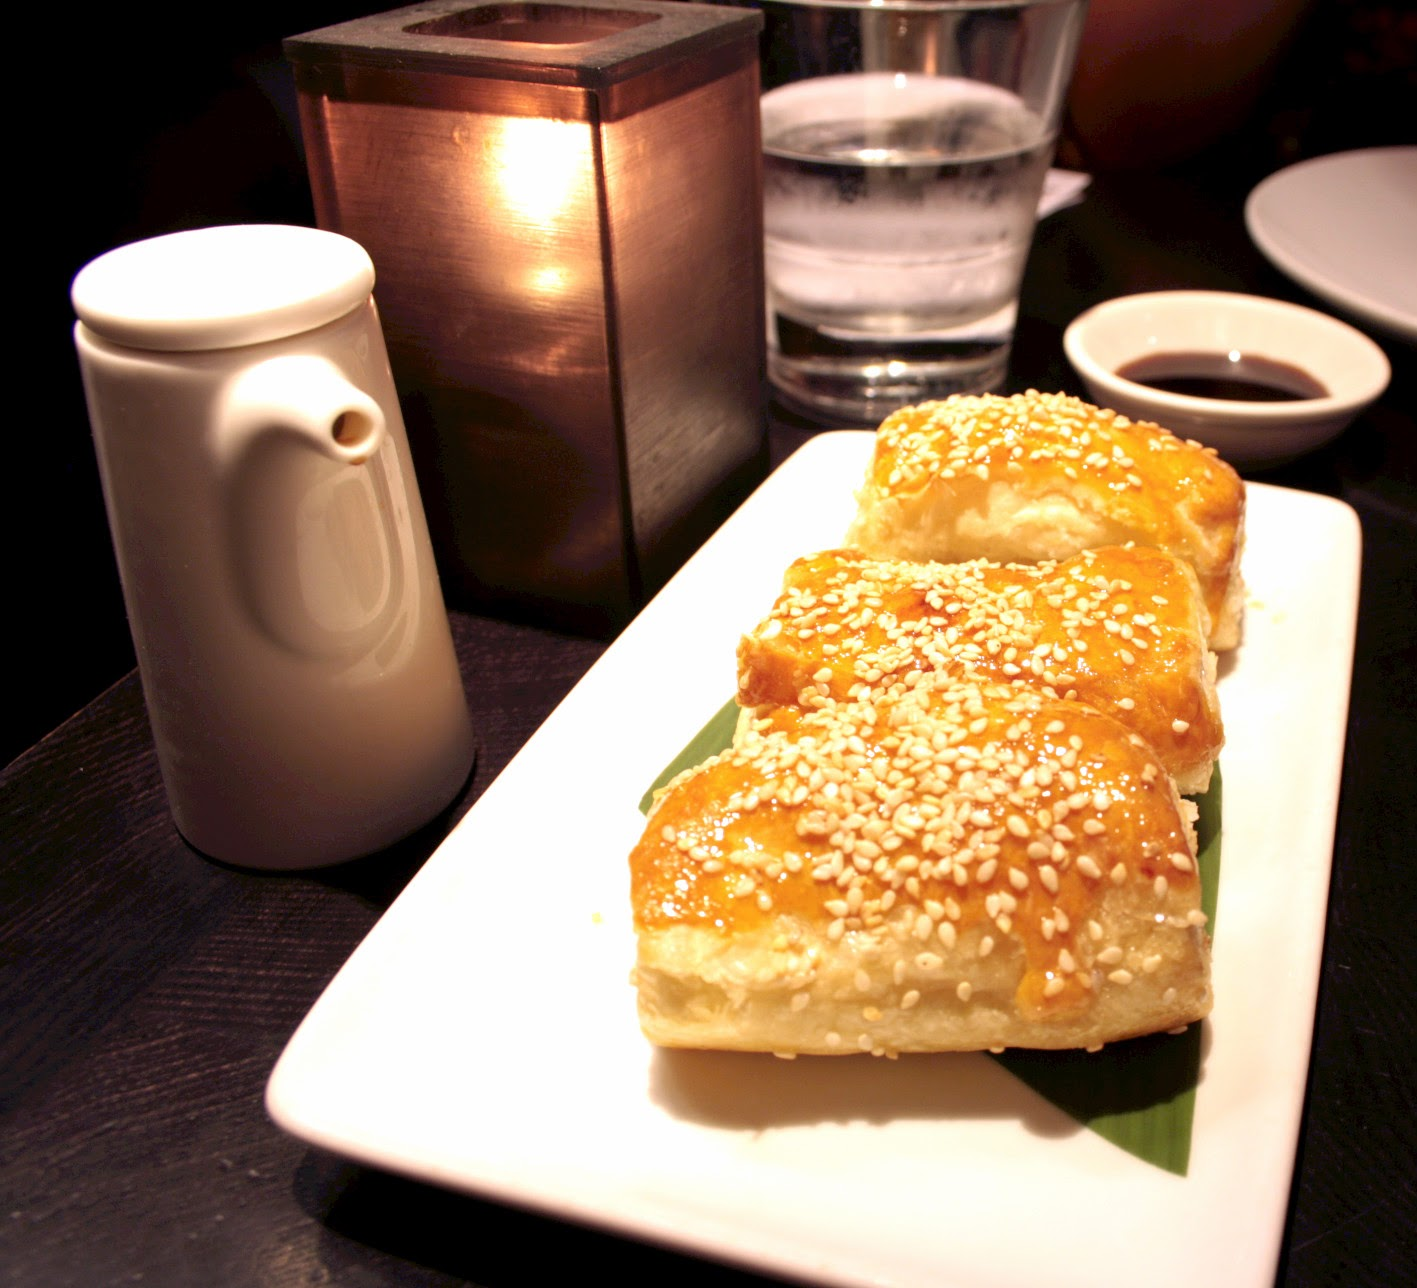 Golden flaky pastry stuffed with honey BBQ pork from Ping Pong dim sum restaurant in Soho